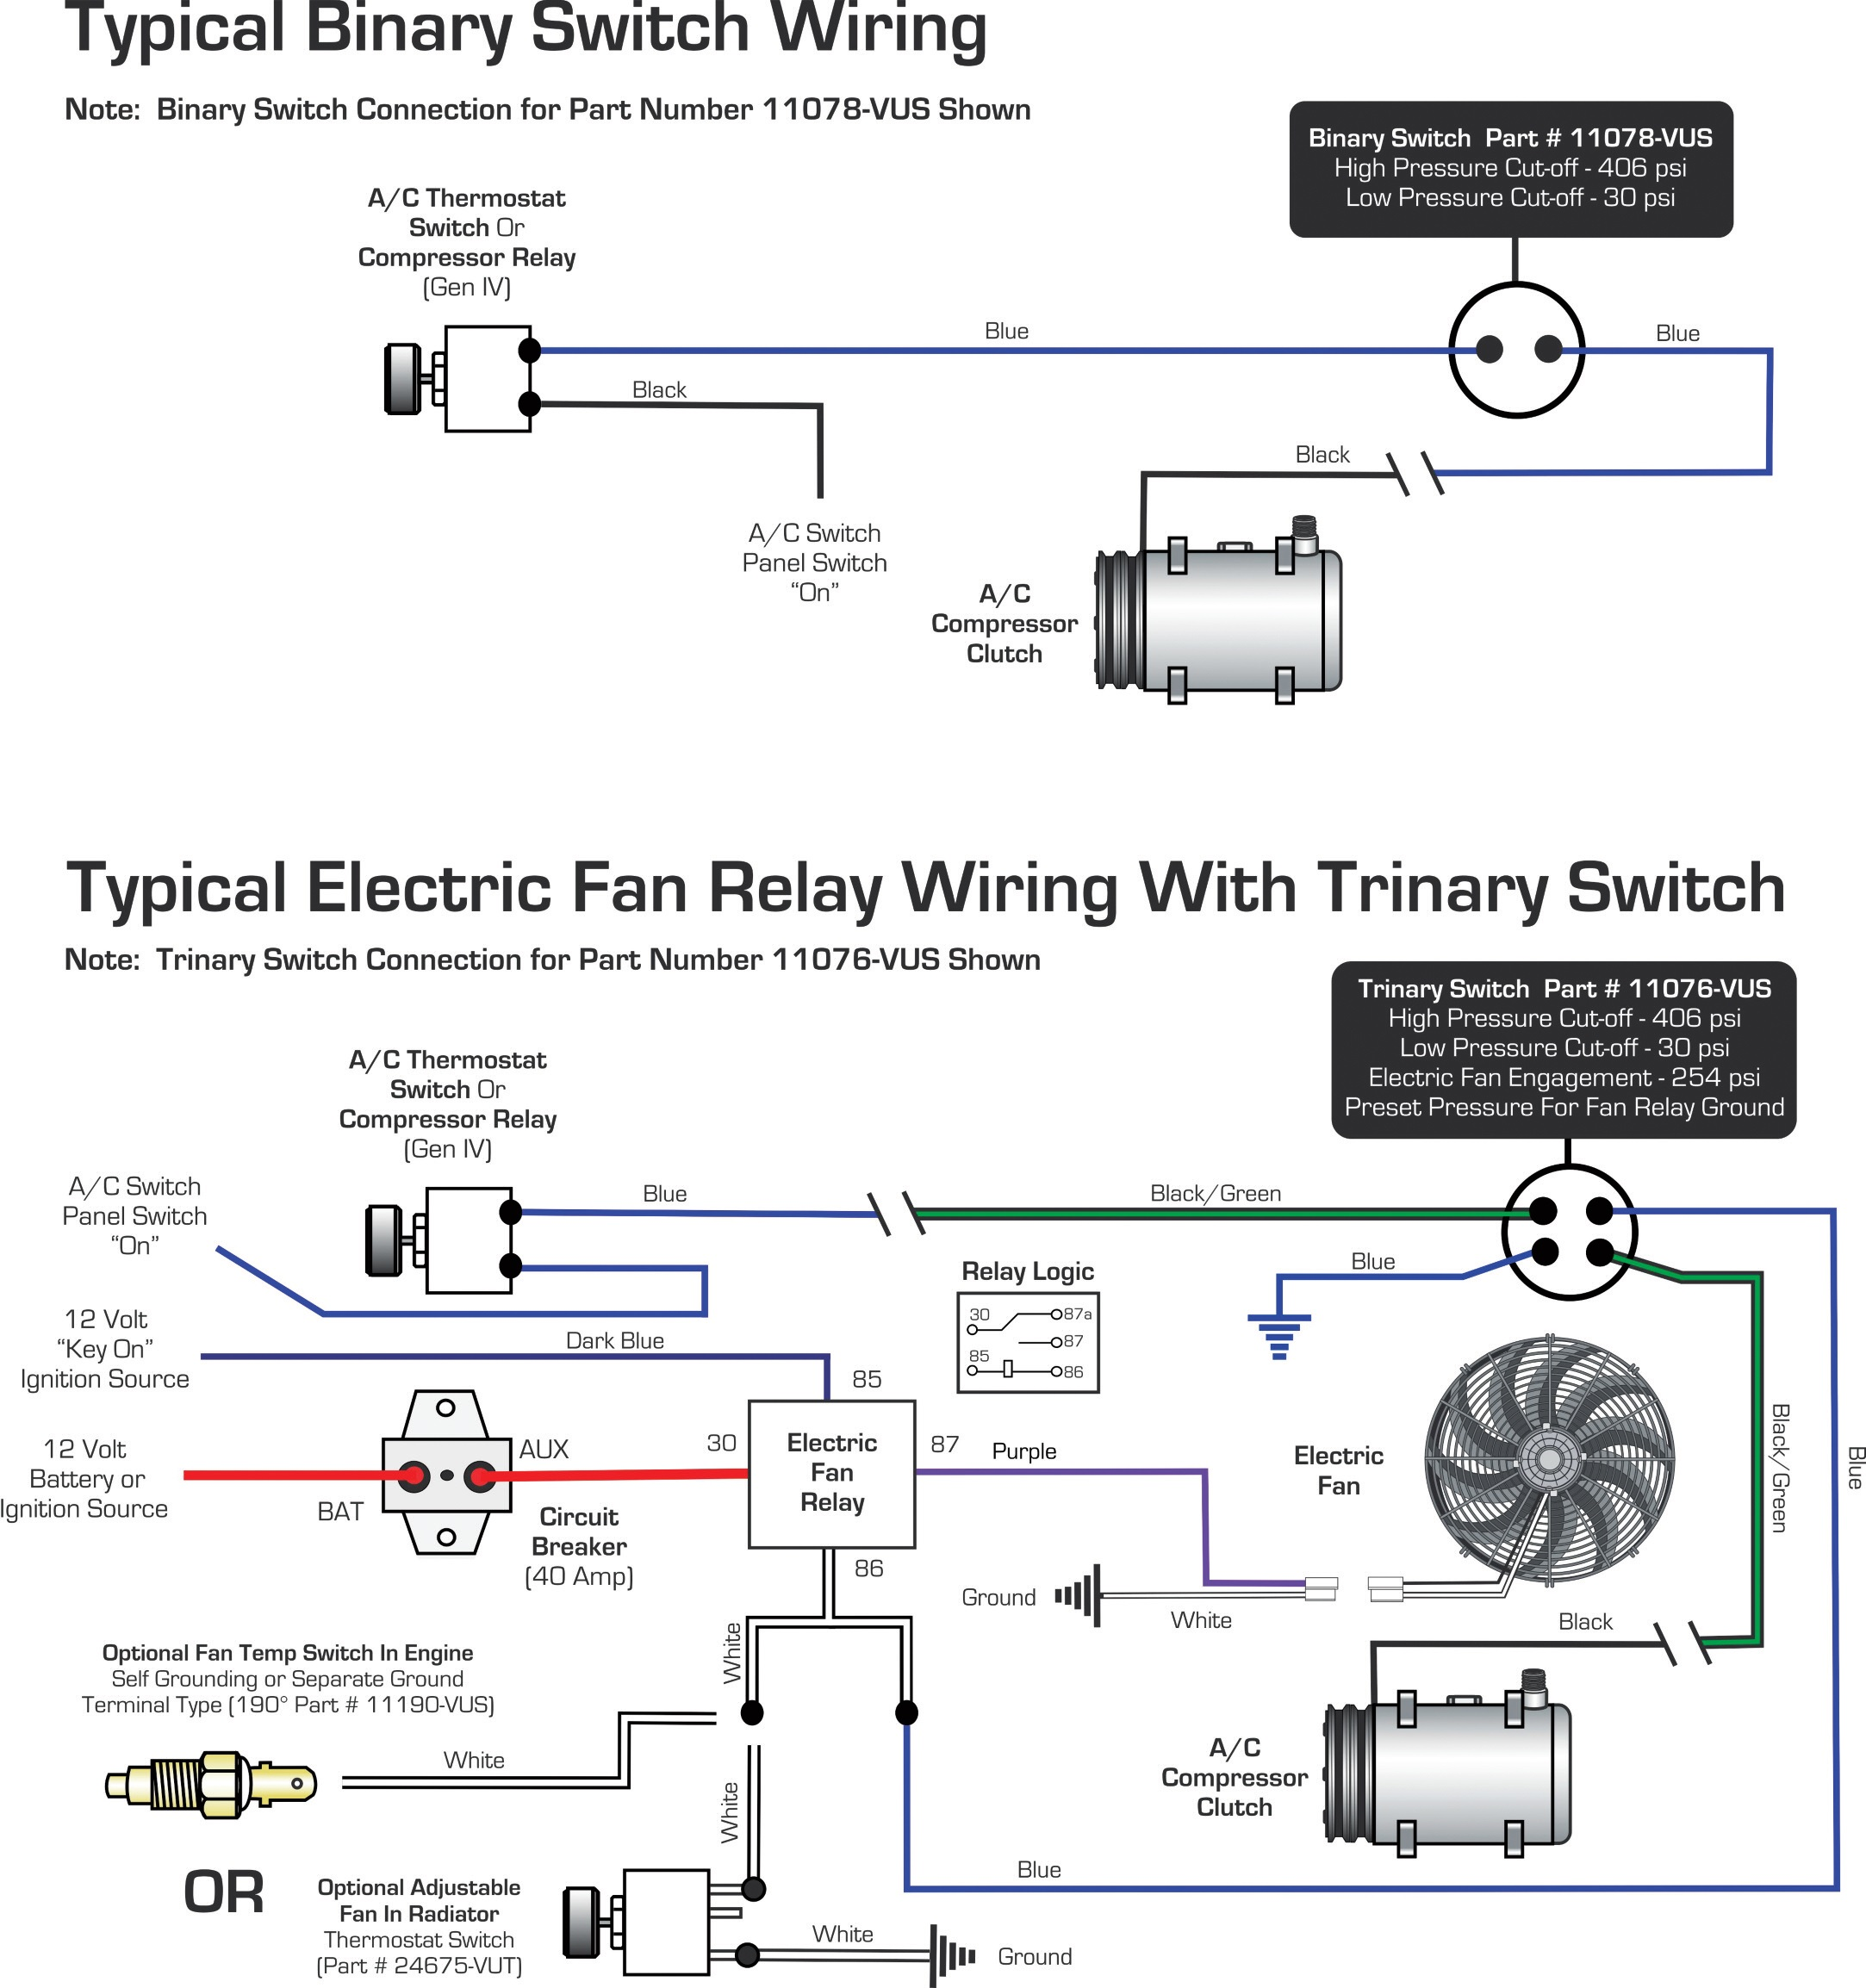 vintage air blog archive wiring diagrams binary switch trinary rh vintageair com ac trinary switch wiring Ford A C Compressor Wiring Schematic